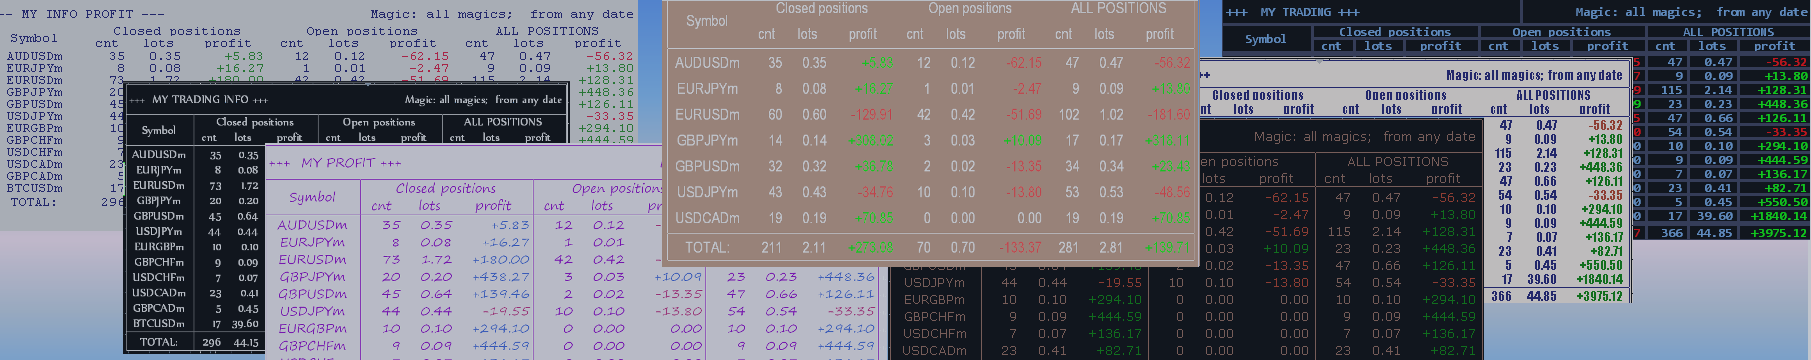 Trading statistics: download the information panel My Informer